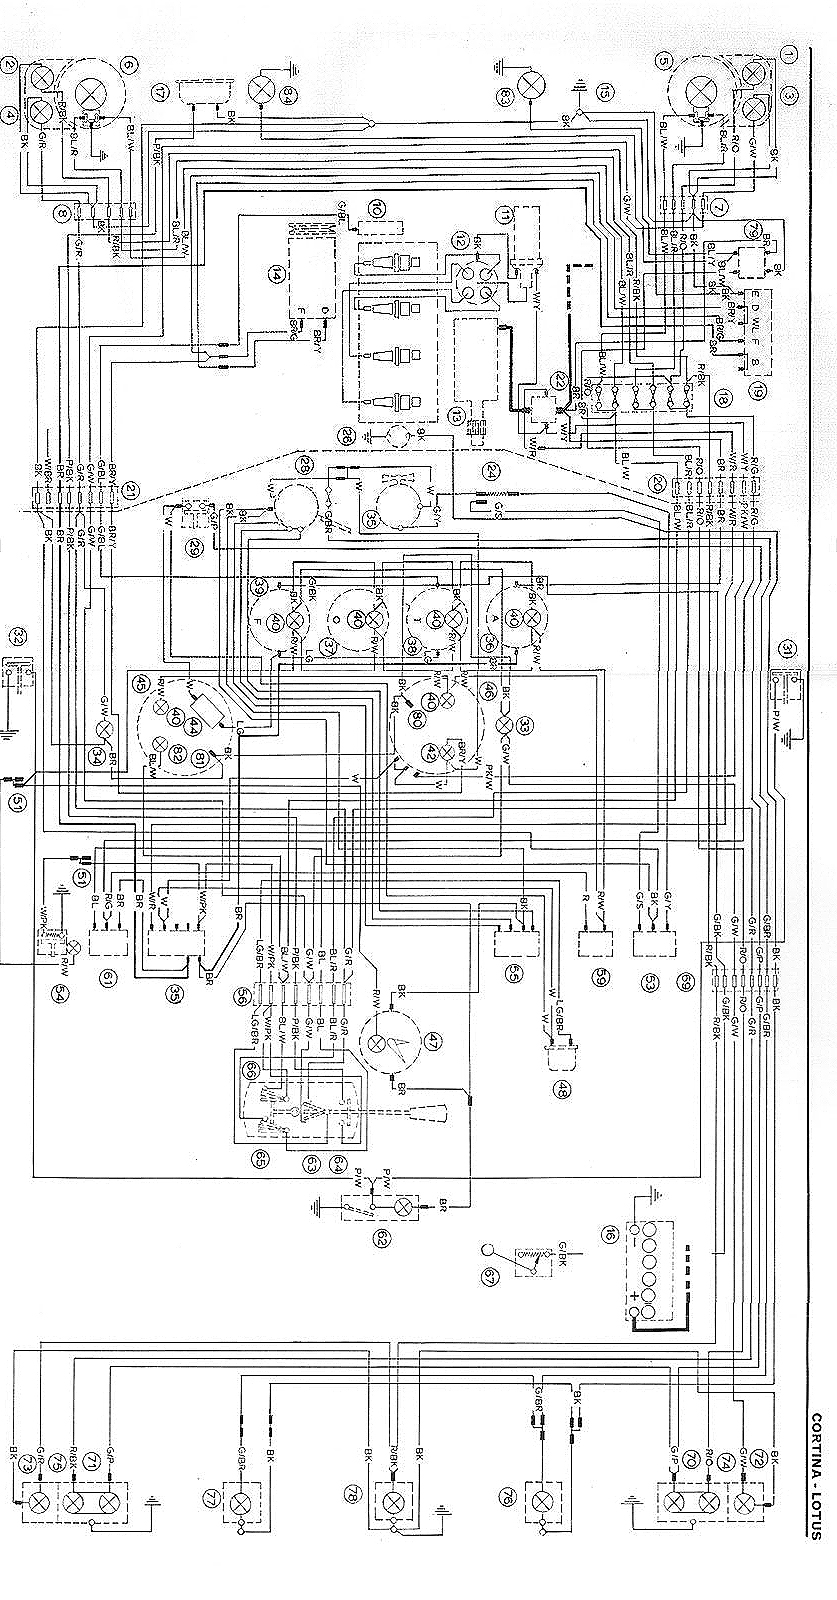 Lhdmk on 1968 Ford Wiring Diagrams